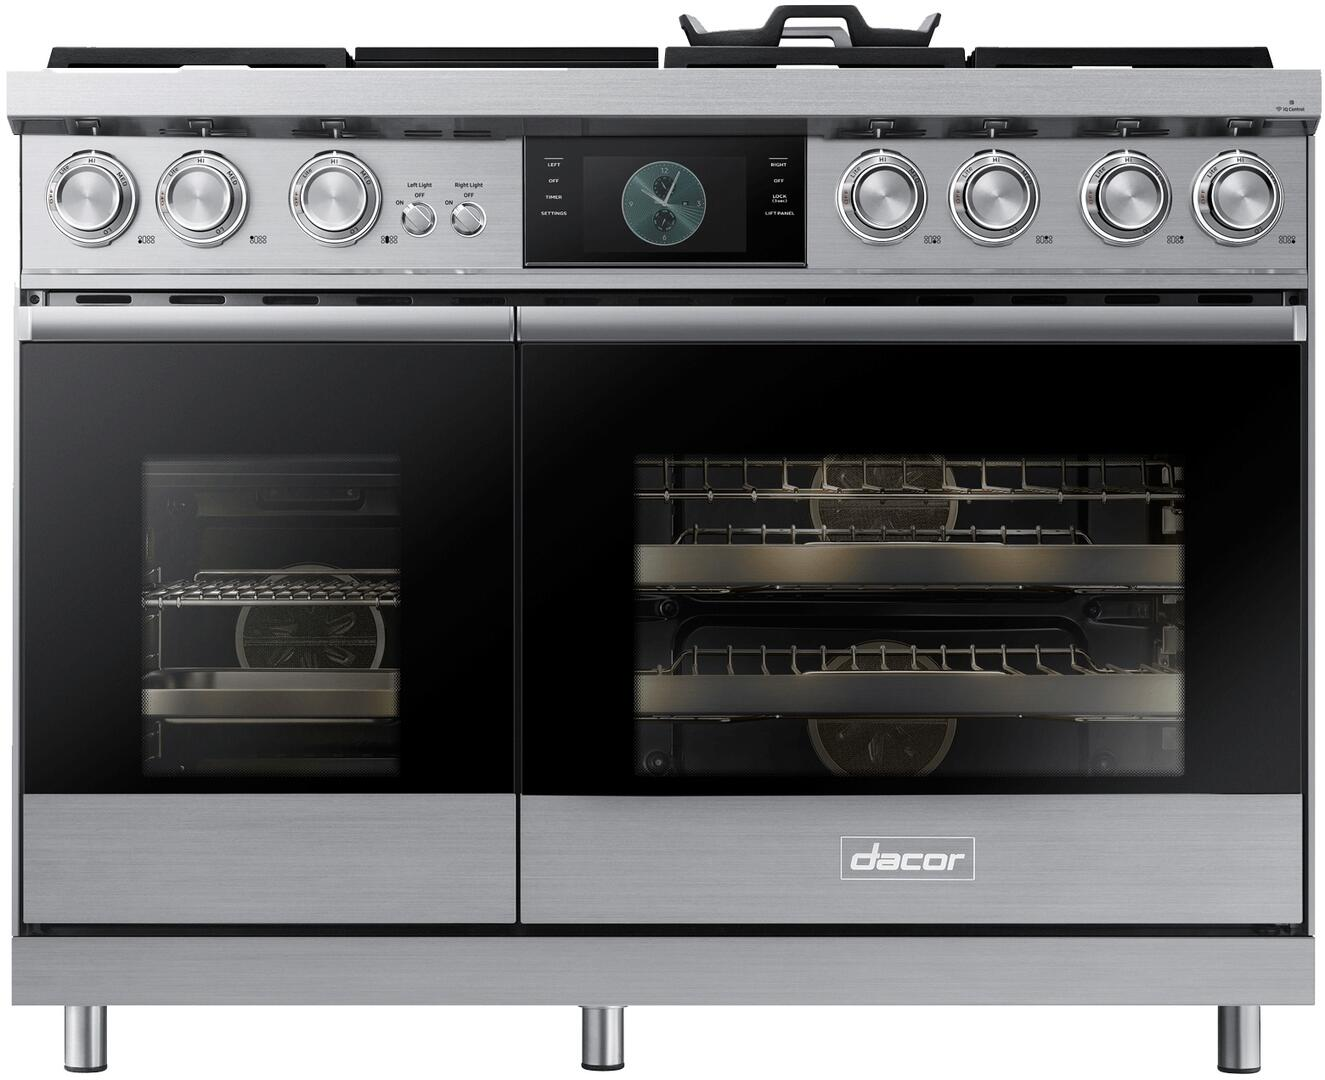 dacor dop48m96dls 48 inch modernist series stainless steel dual fuel rh appliancesconnection com Dacor Gas Cooktop Parts Dacor Gas Range